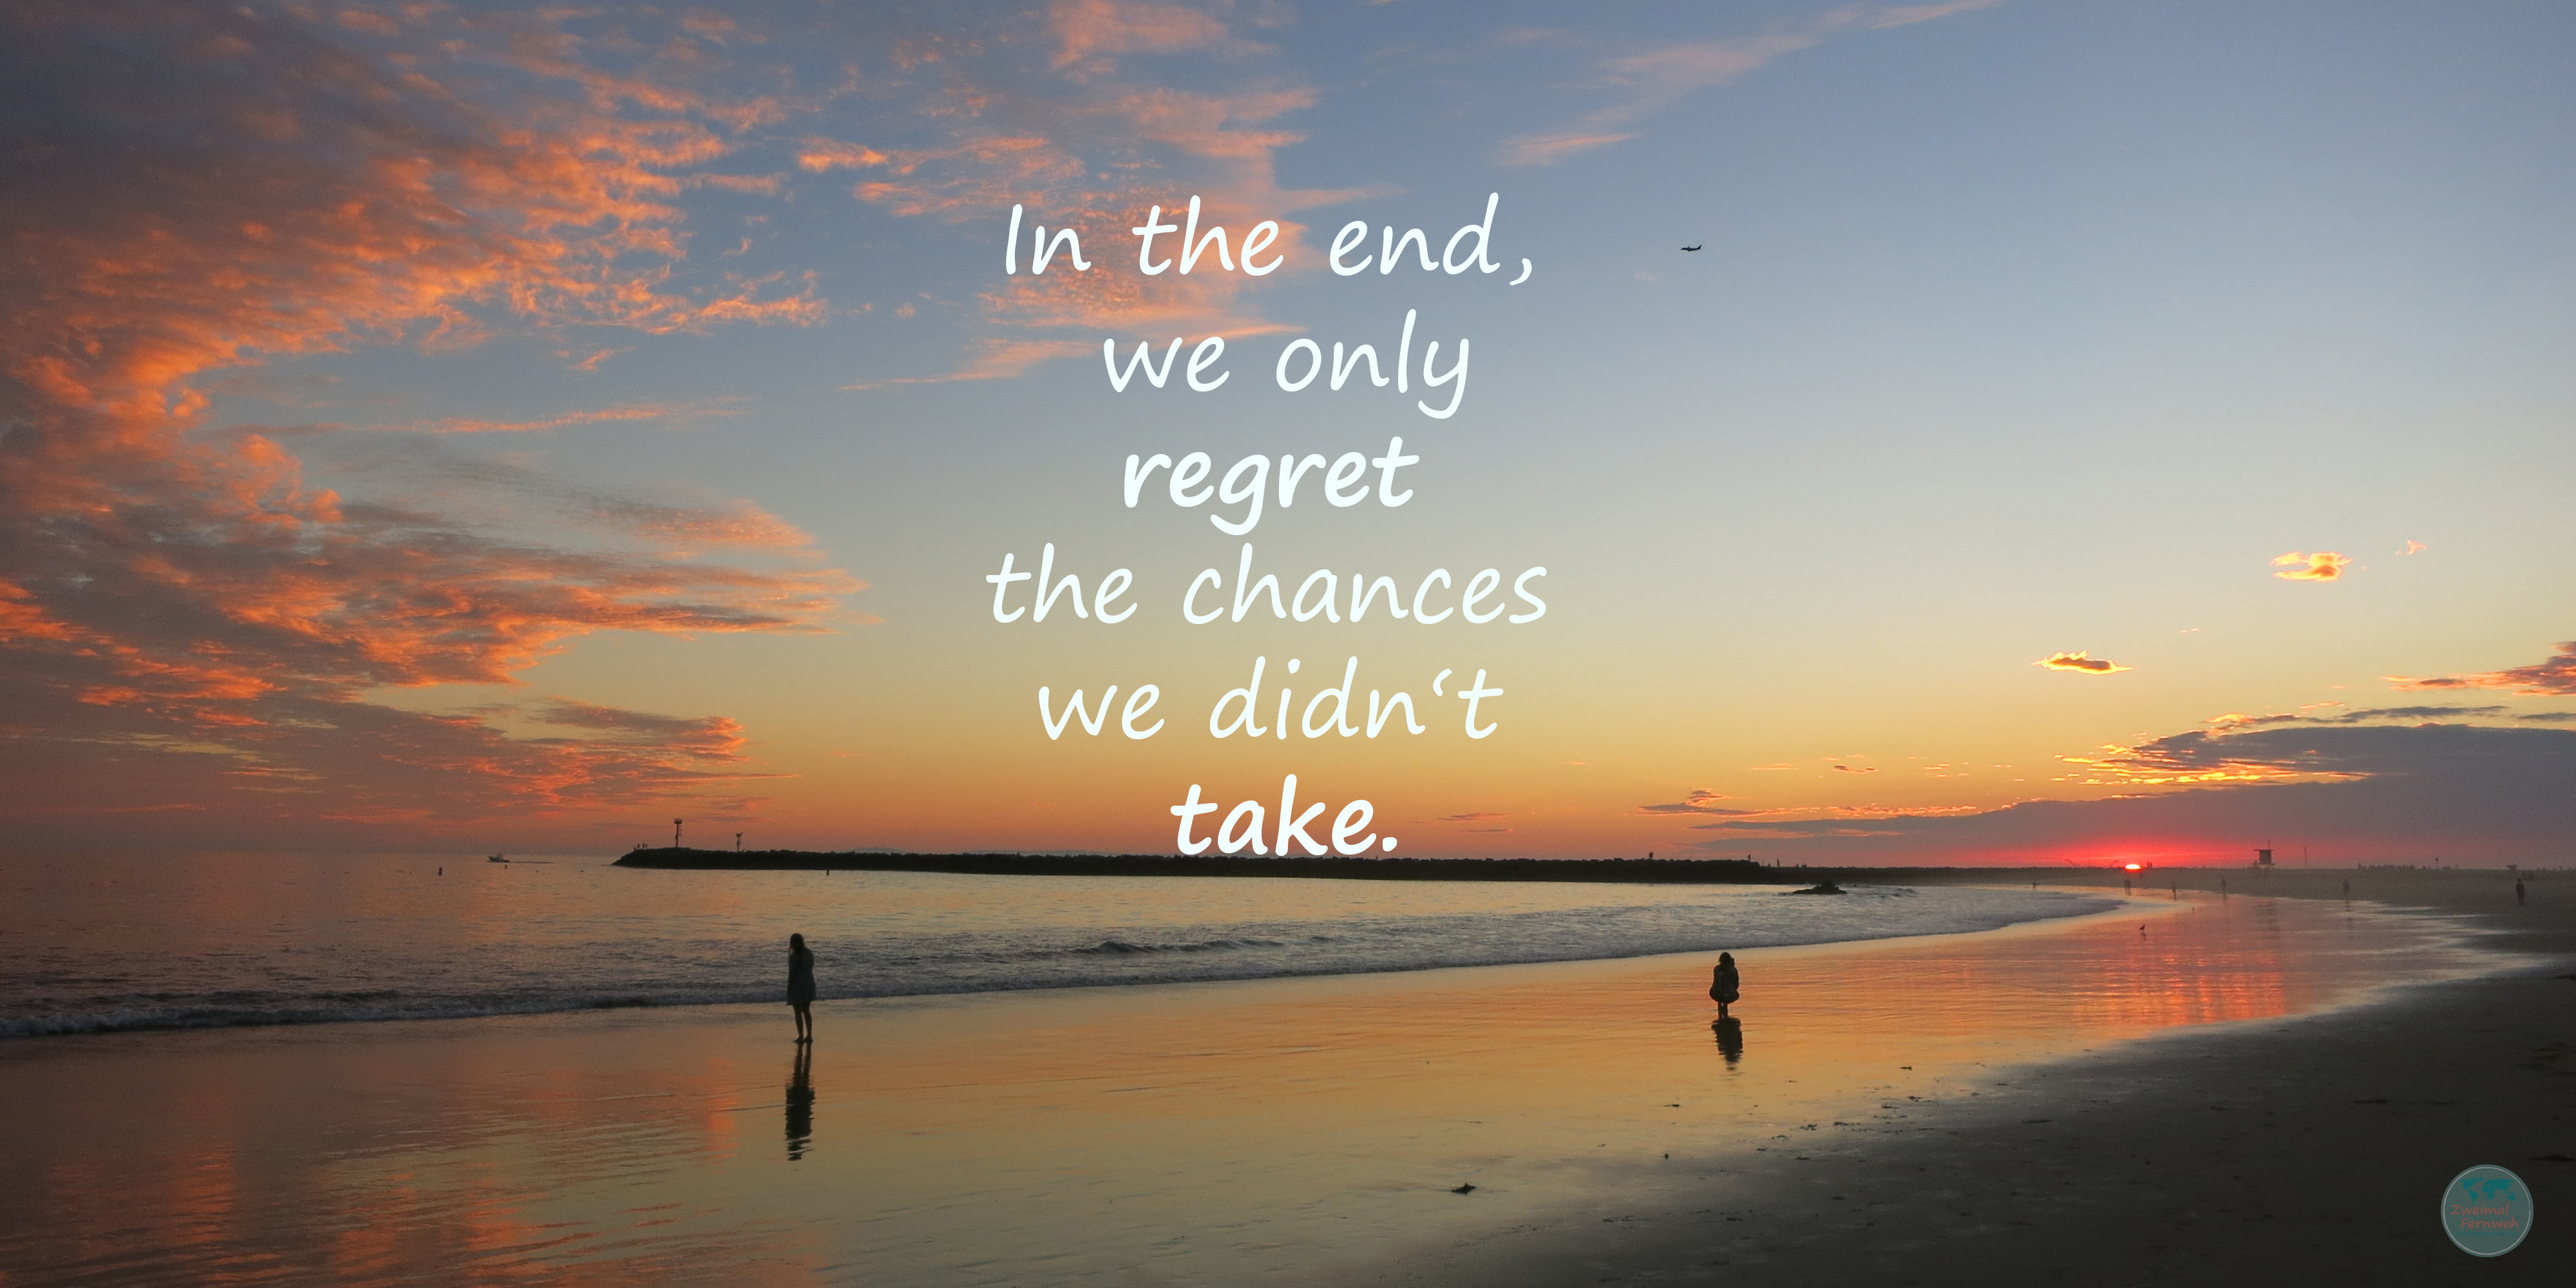 Weltreise Backpacking Entscheidung Regret Chances Did't Take